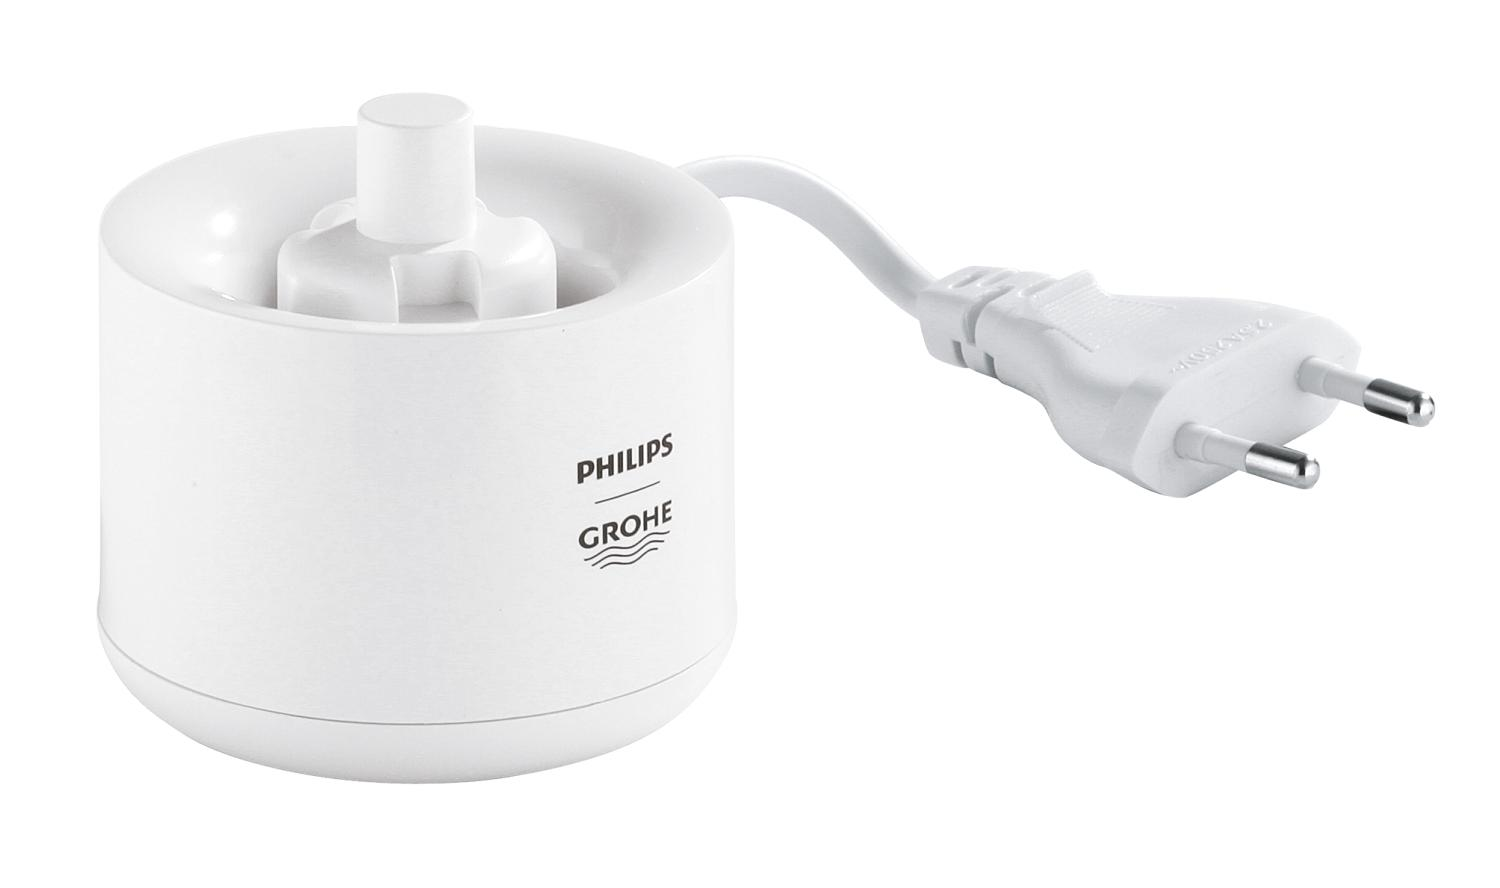 GROHE AQUATUNES SPEAKER ALTOPARLANTE DA DOCCIA WIRELESS PHILIPS